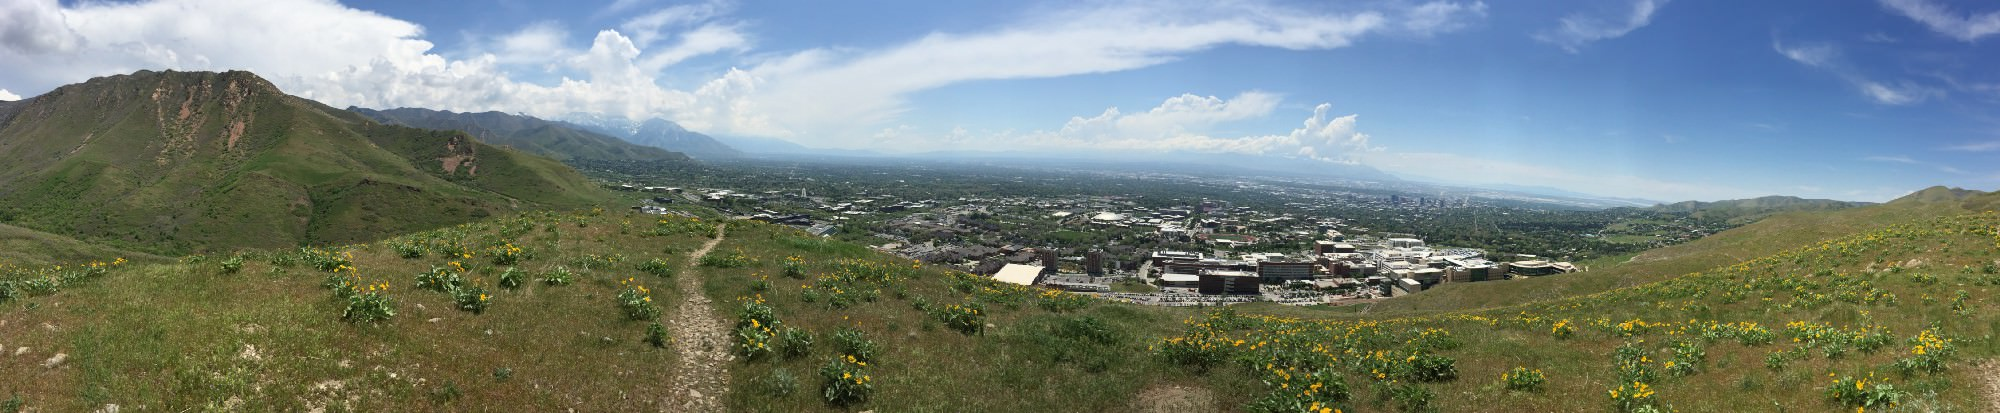 A panoramic view of Salt Lake City from the foothills of the Wasatch Range.